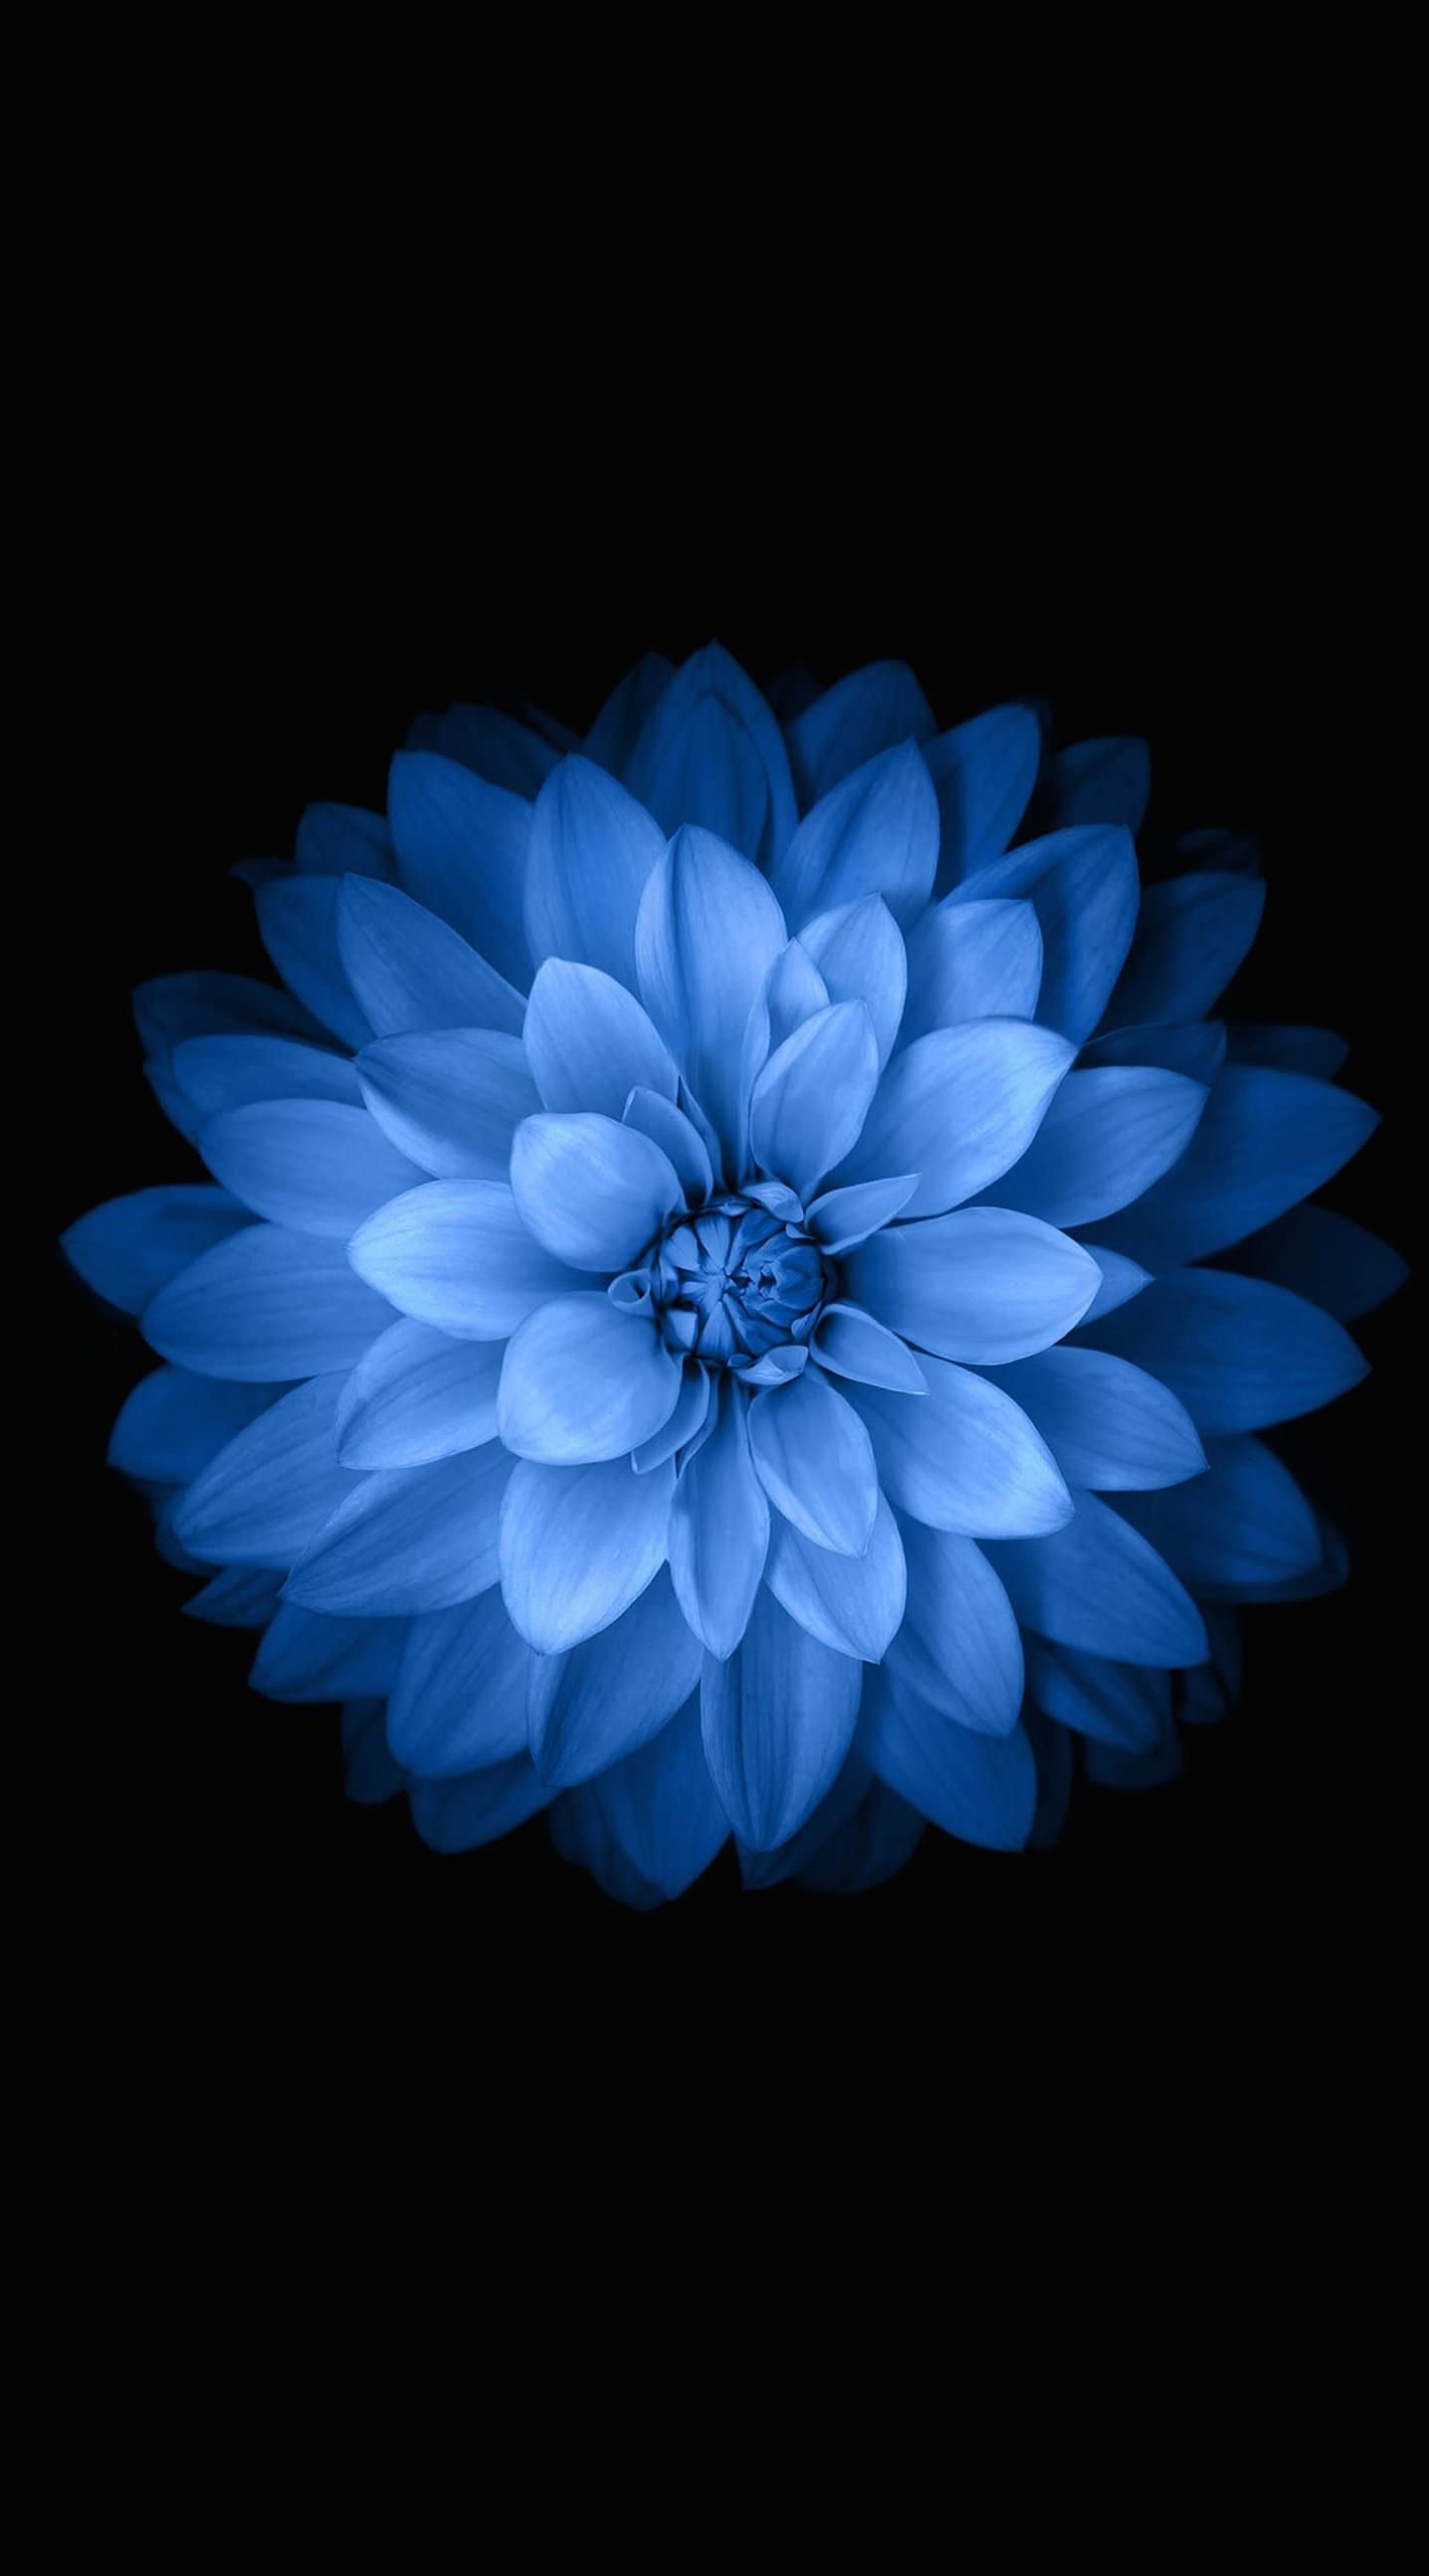 Iphone 6 Flower Wallpapers Hd Blue Iphone Wallpaper Iphone 6s Wallpaper Flower 1438x2592 Wallpaper Teahub Io